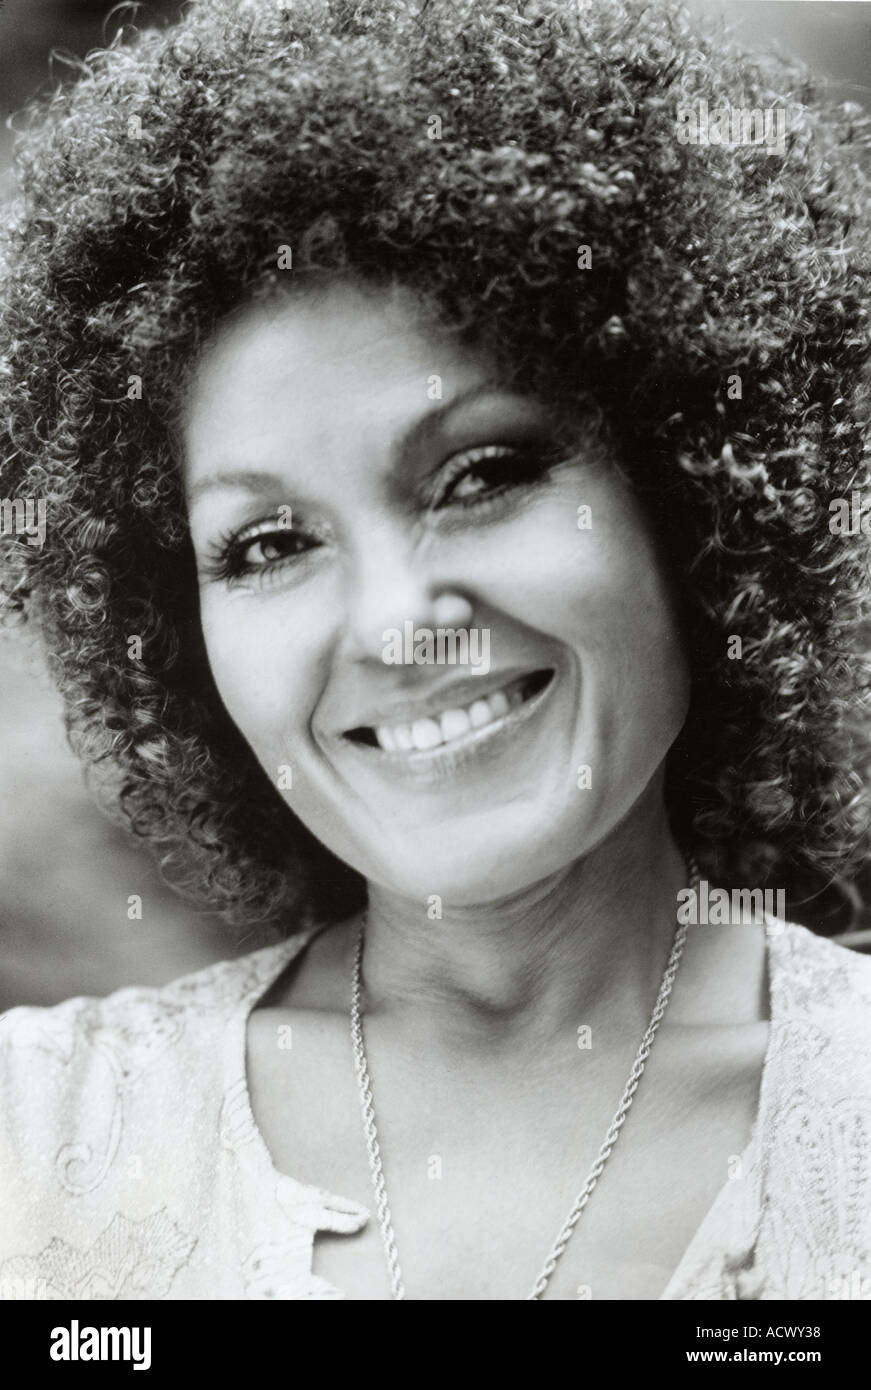 Cleo Laine (born 1927) Cleo Laine (born 1927) new pictures